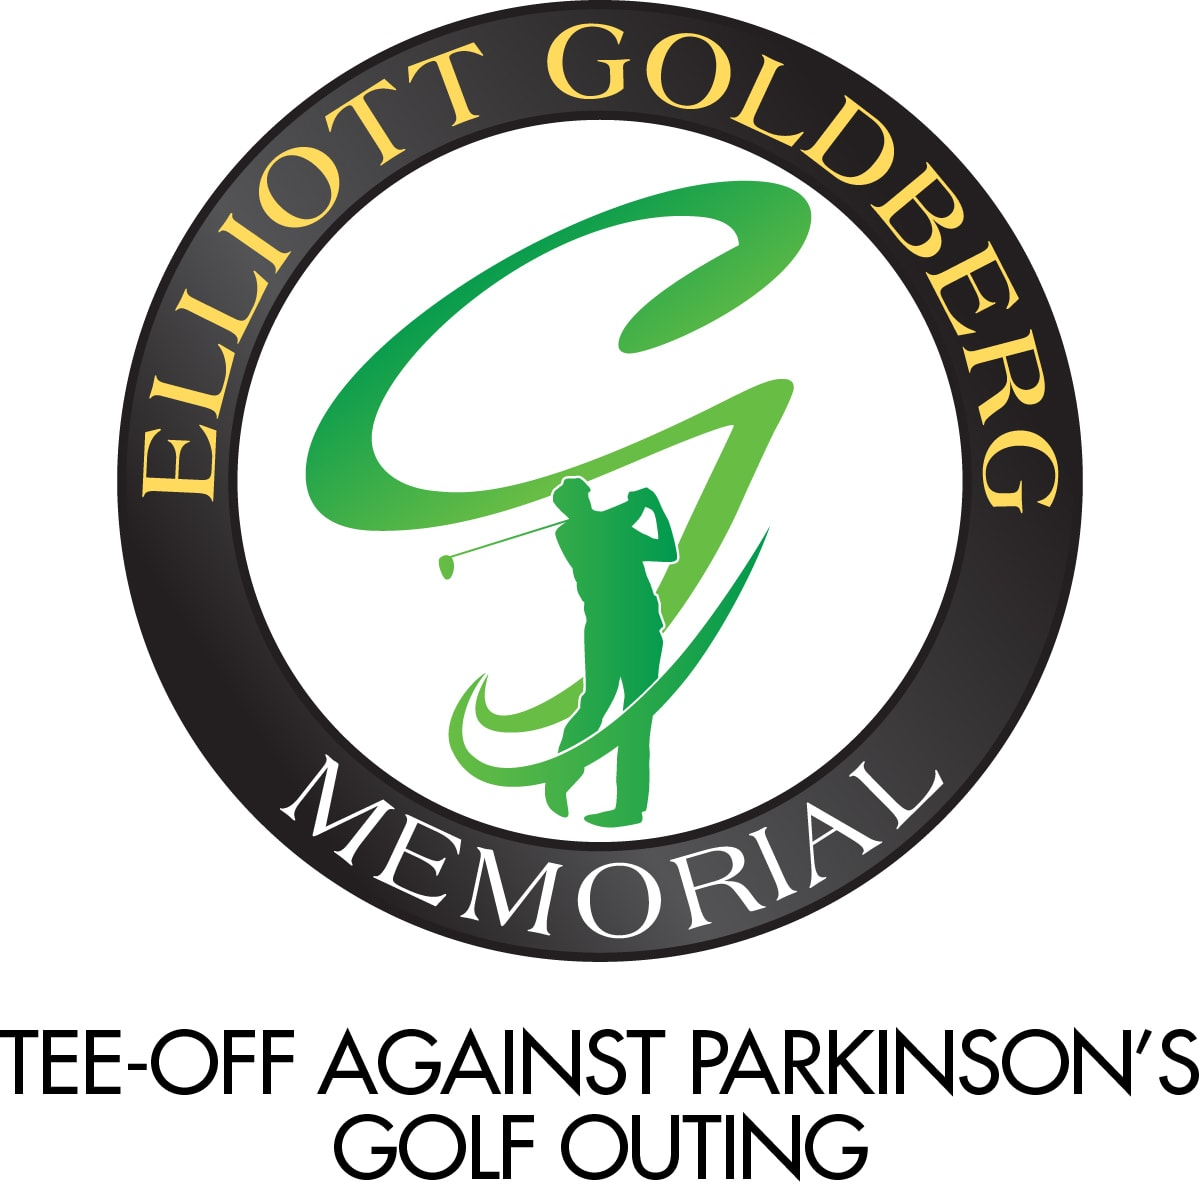 elliott goldberg memorial golf